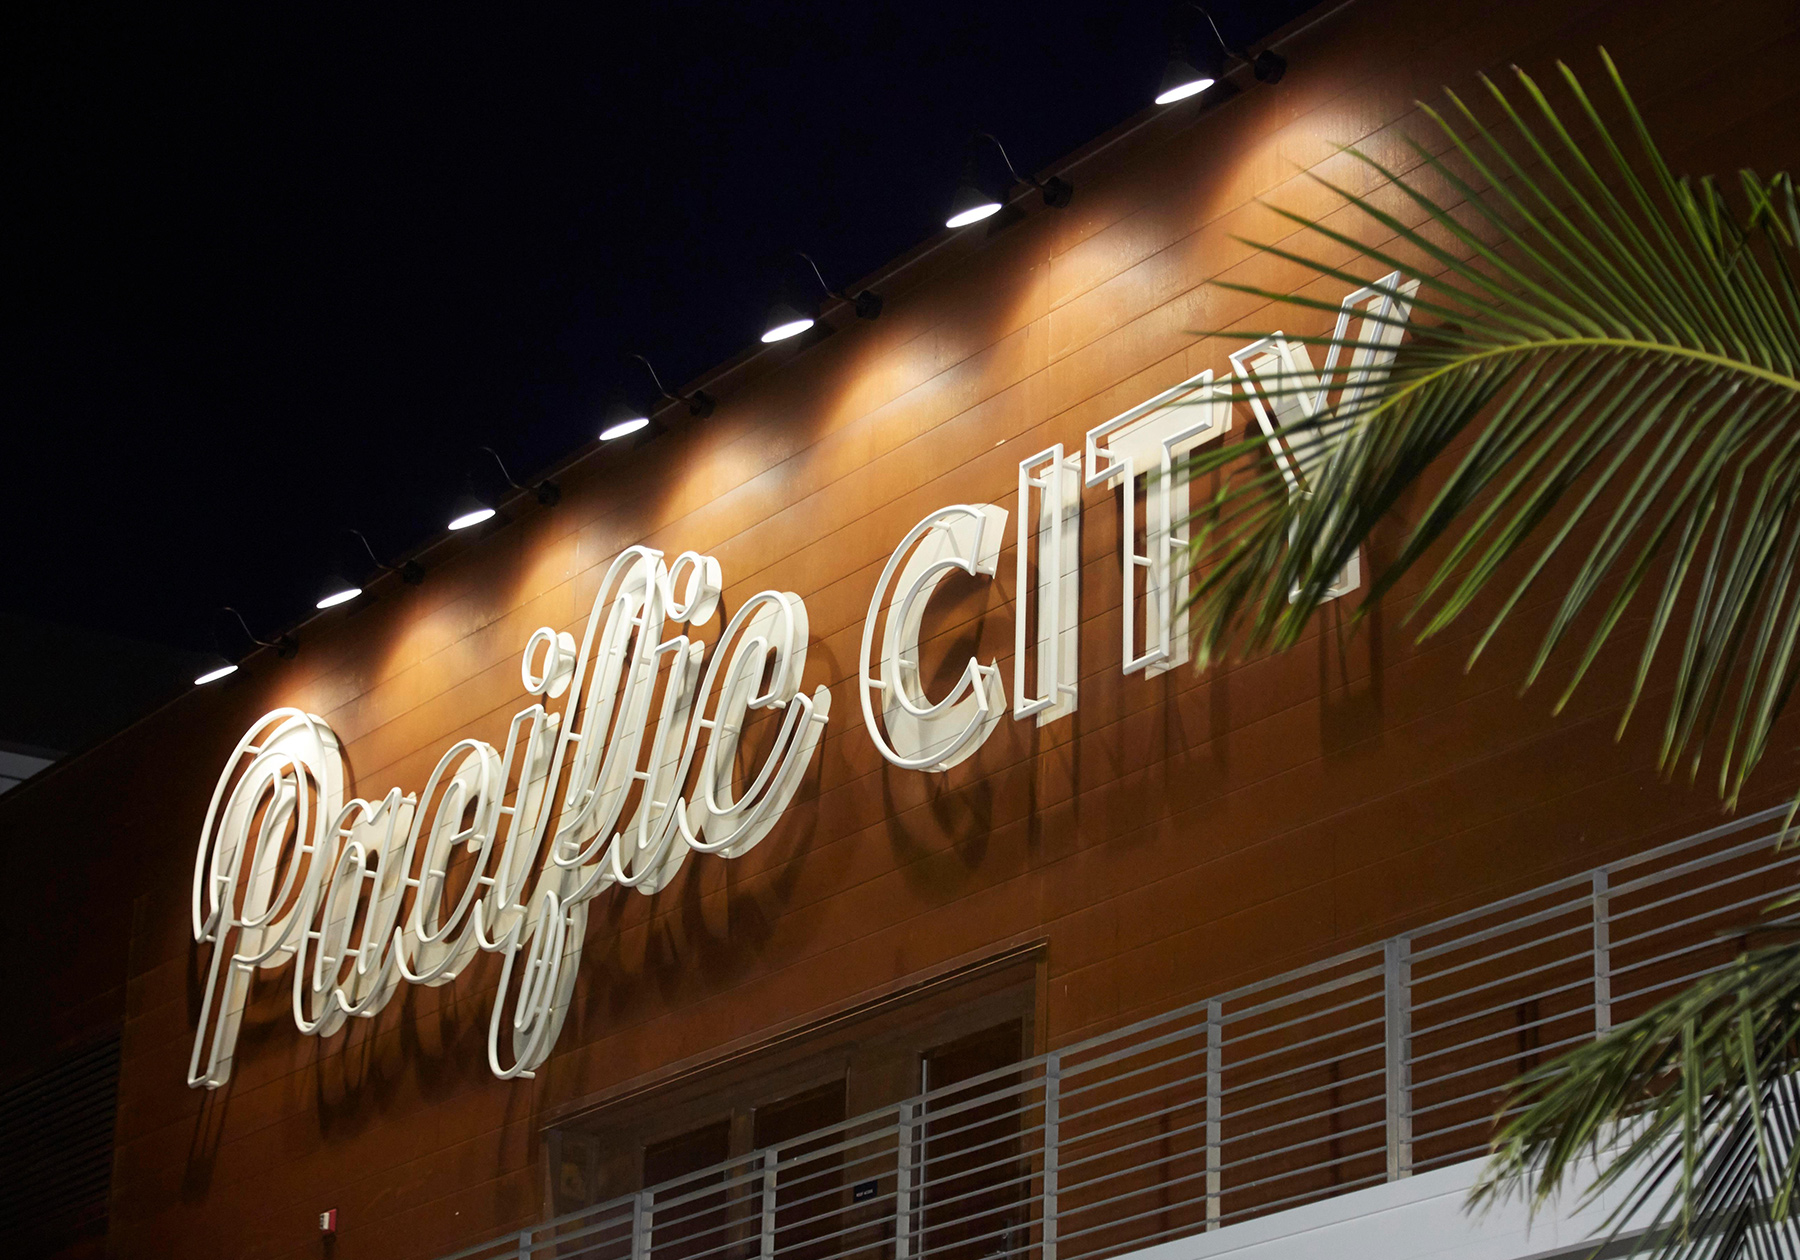 Our_Portfolio_Pacific_City_01.jpg